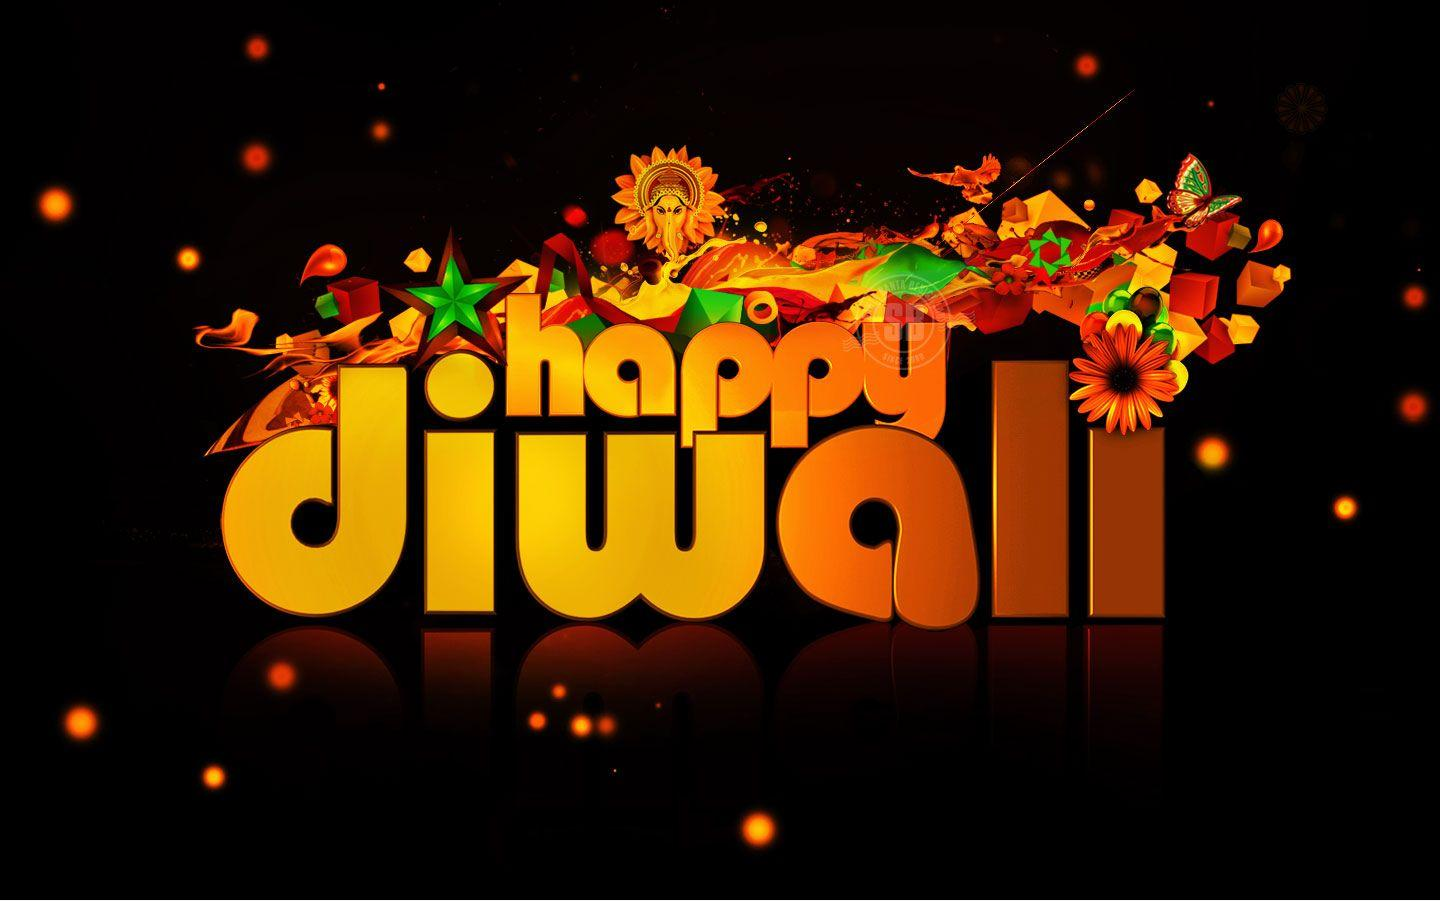 Special Happy Diwali 2018 Whatsapp Status Wishes Sms Fb Dp Images Photos